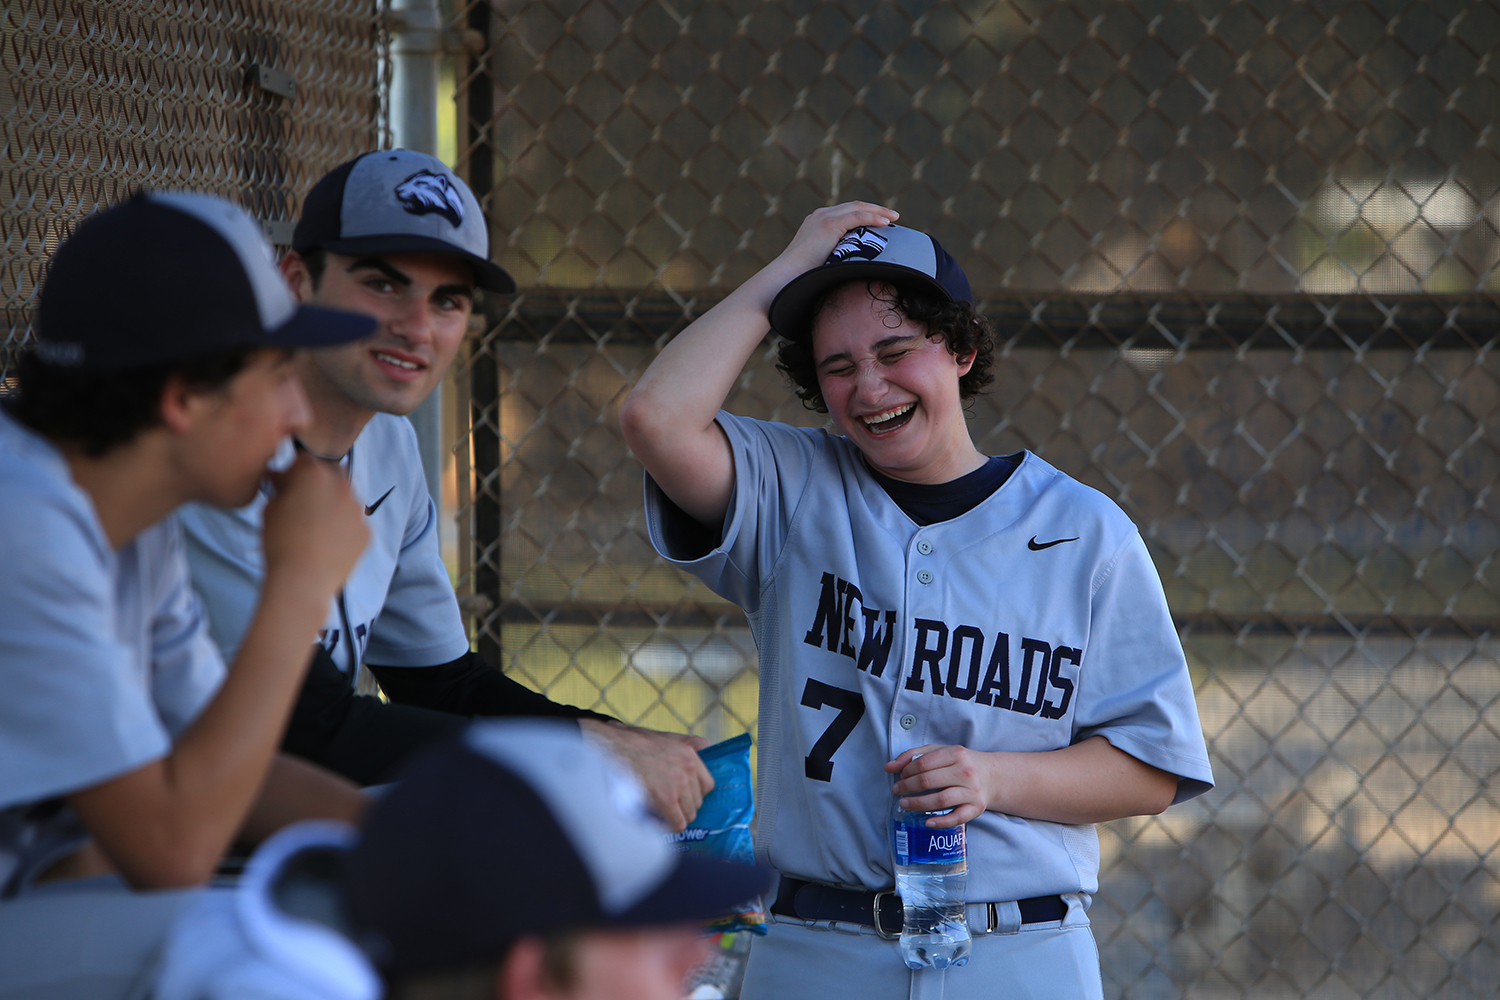 Jake Hofheimer, right, 17-year-old transgender male plays second baseman and outfielder on the New Roads Jaguars baseball team,jokes around with friend, Jake Boyle, center. © Gail Fisher for ESPN